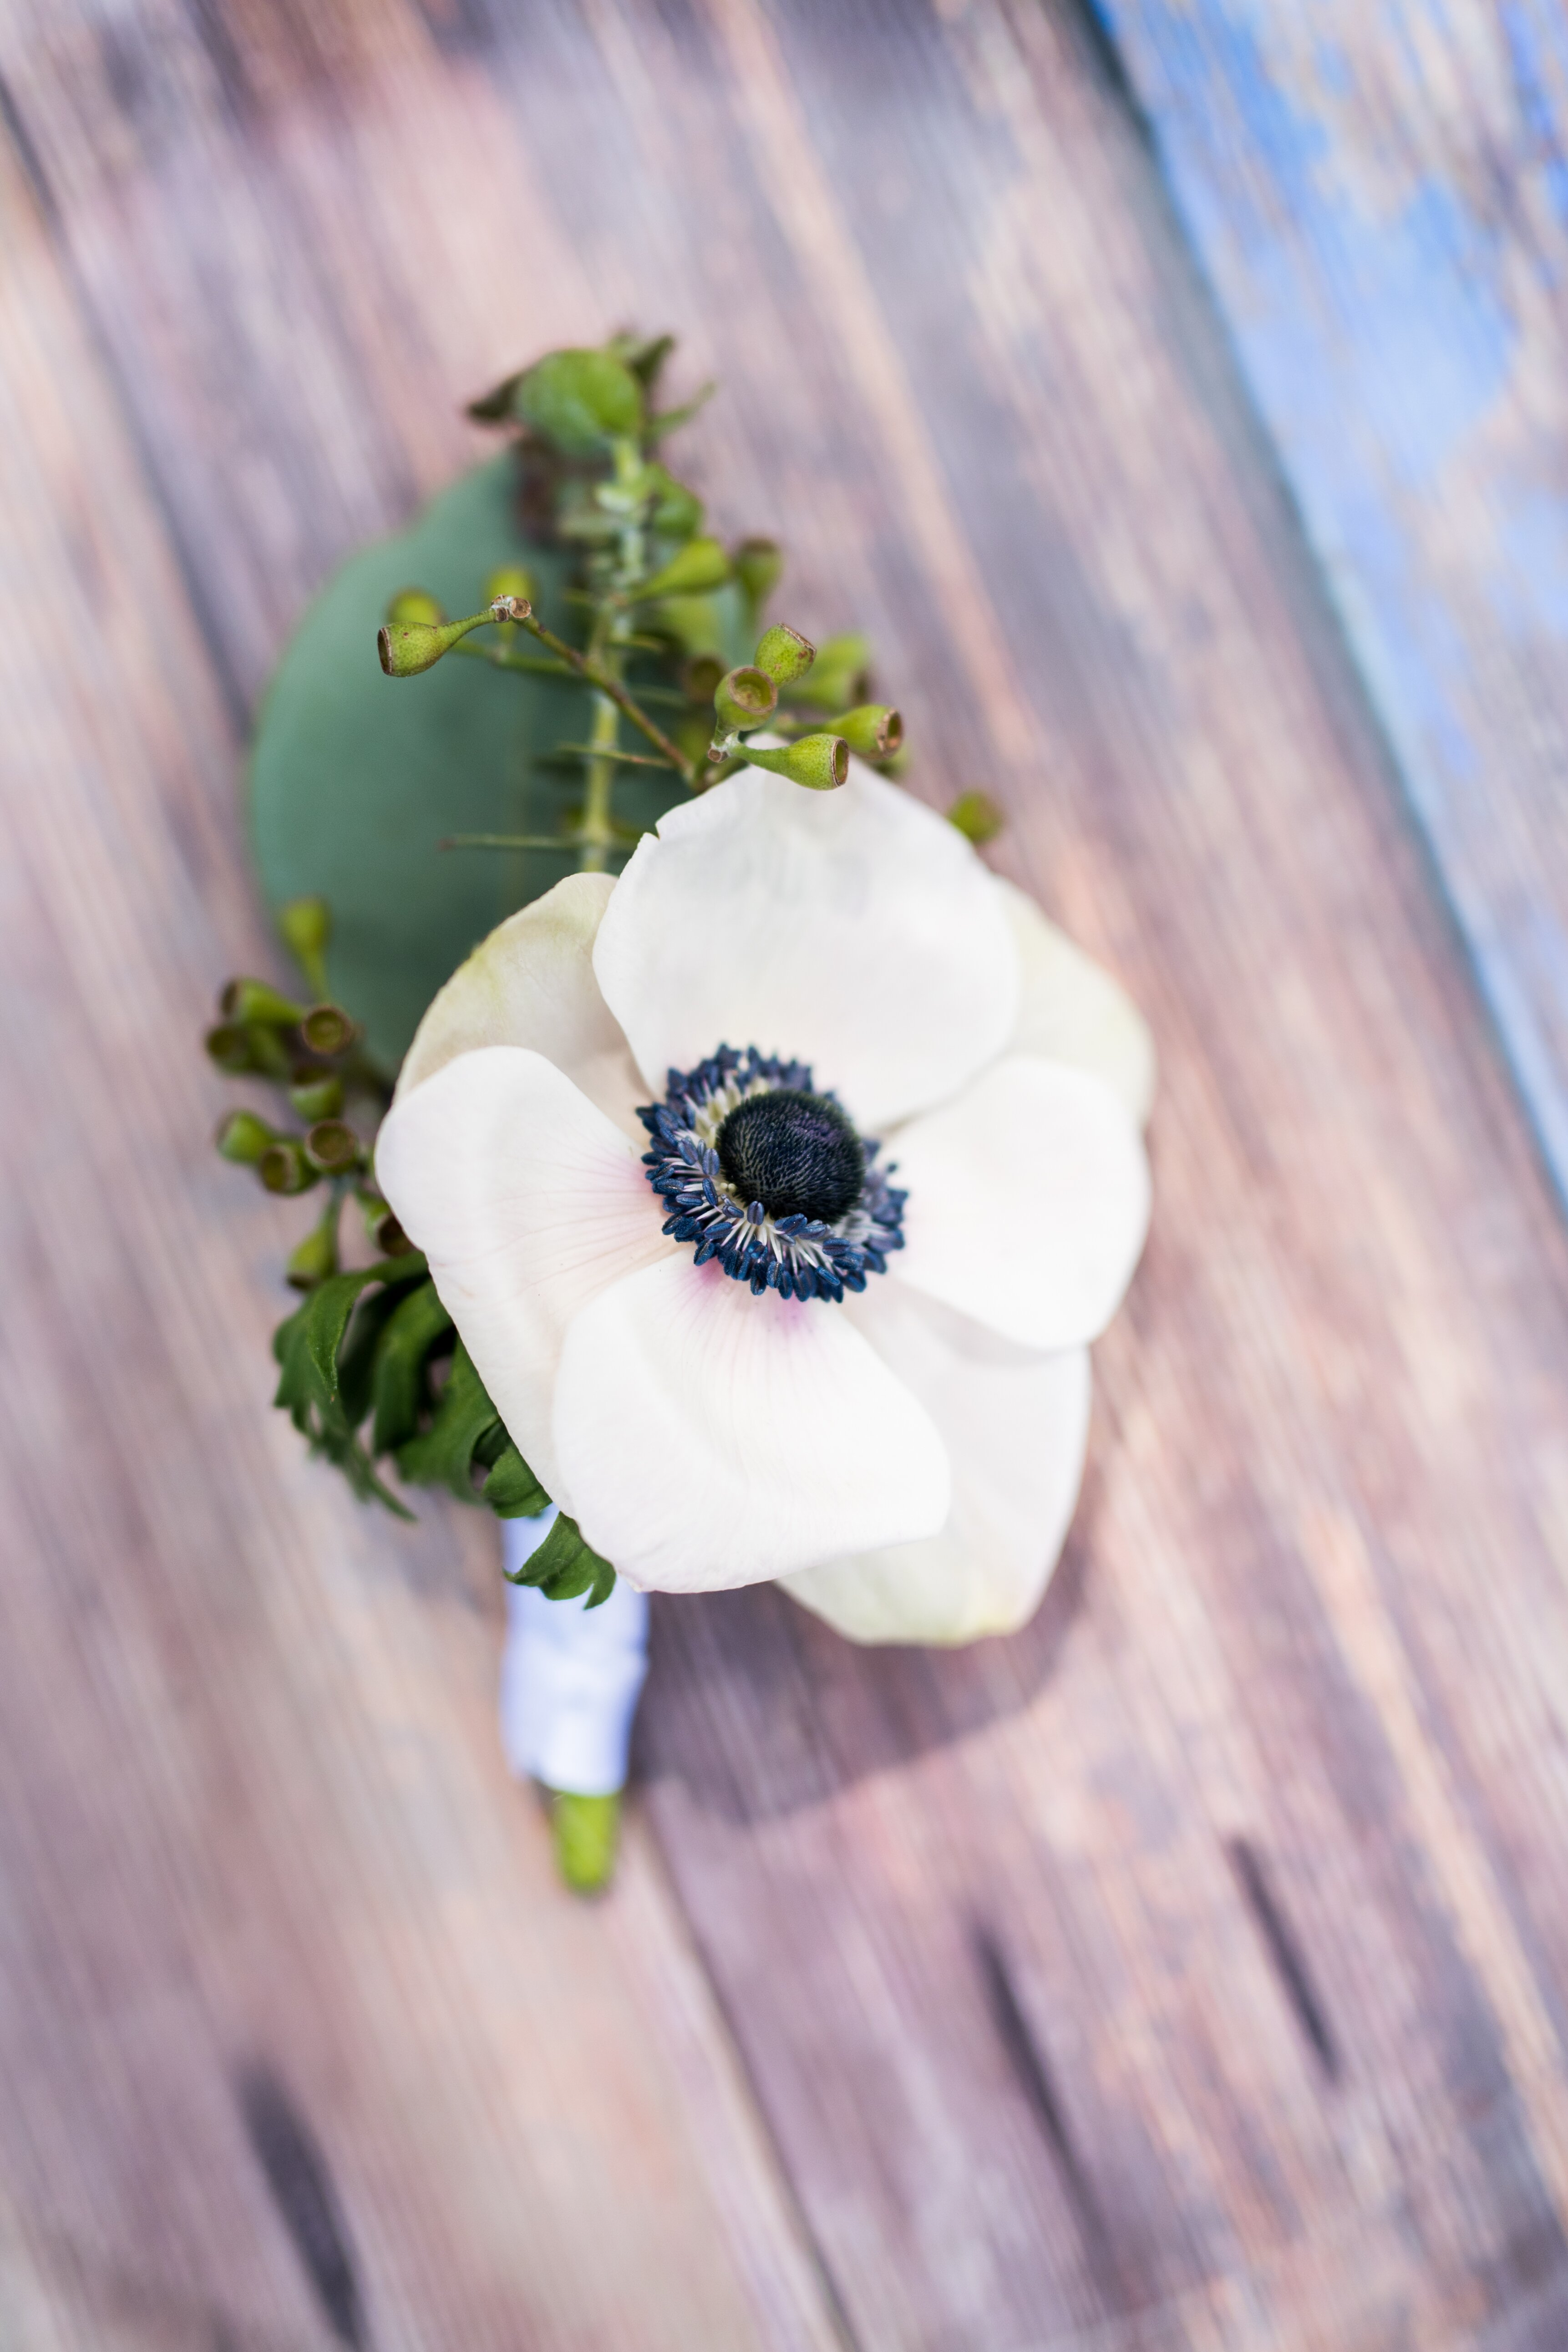 The anemone flower in bridal bouquets wonderland weddings these stunning soft blooms are typically in season between october and may ranging in bright red purple pink blue and magenta the most popular of these mightylinksfo Choice Image